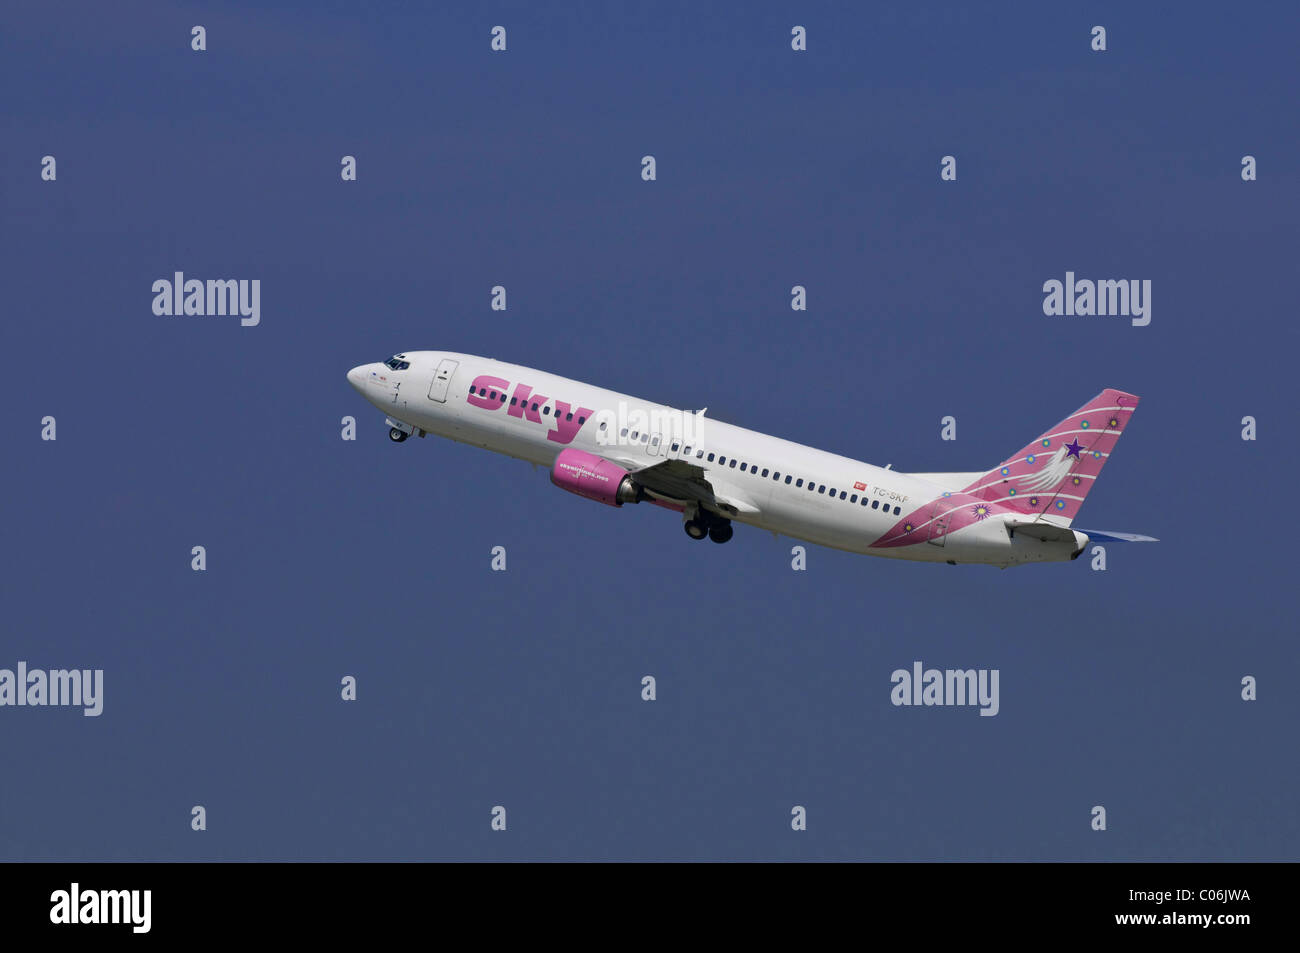 Passenger aircraft from Sky Airlines, a Turkish airline, Boeing 737-400, climbing - Stock Image